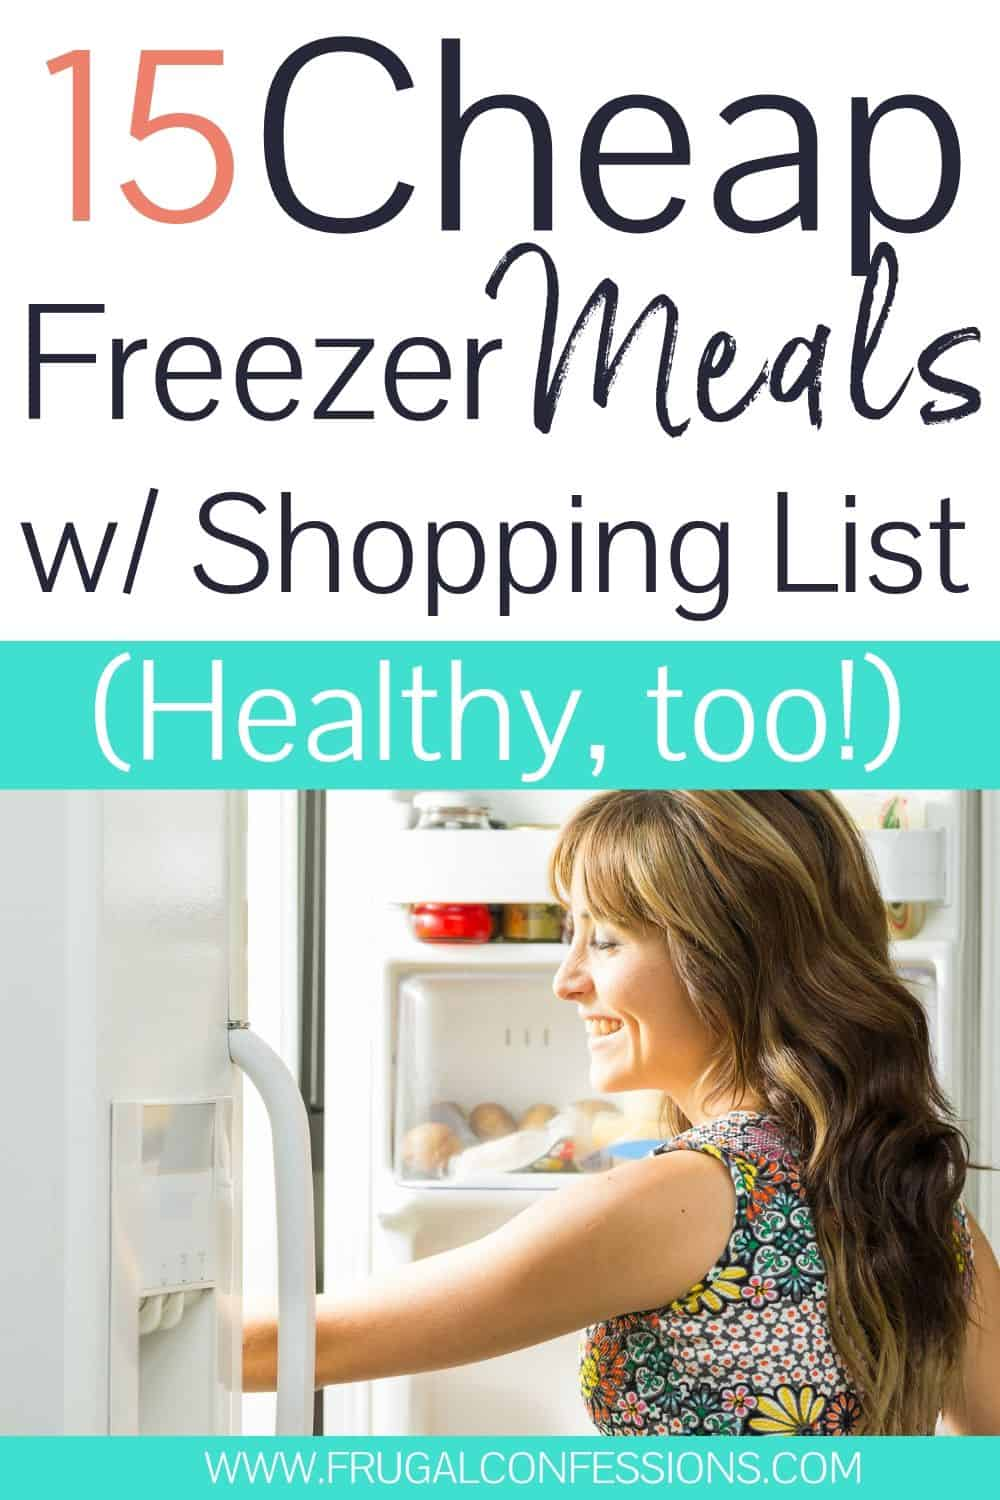 "woman going into freezer, text overlay ""15 cheap freezer meals with shopping list, health, too!"""